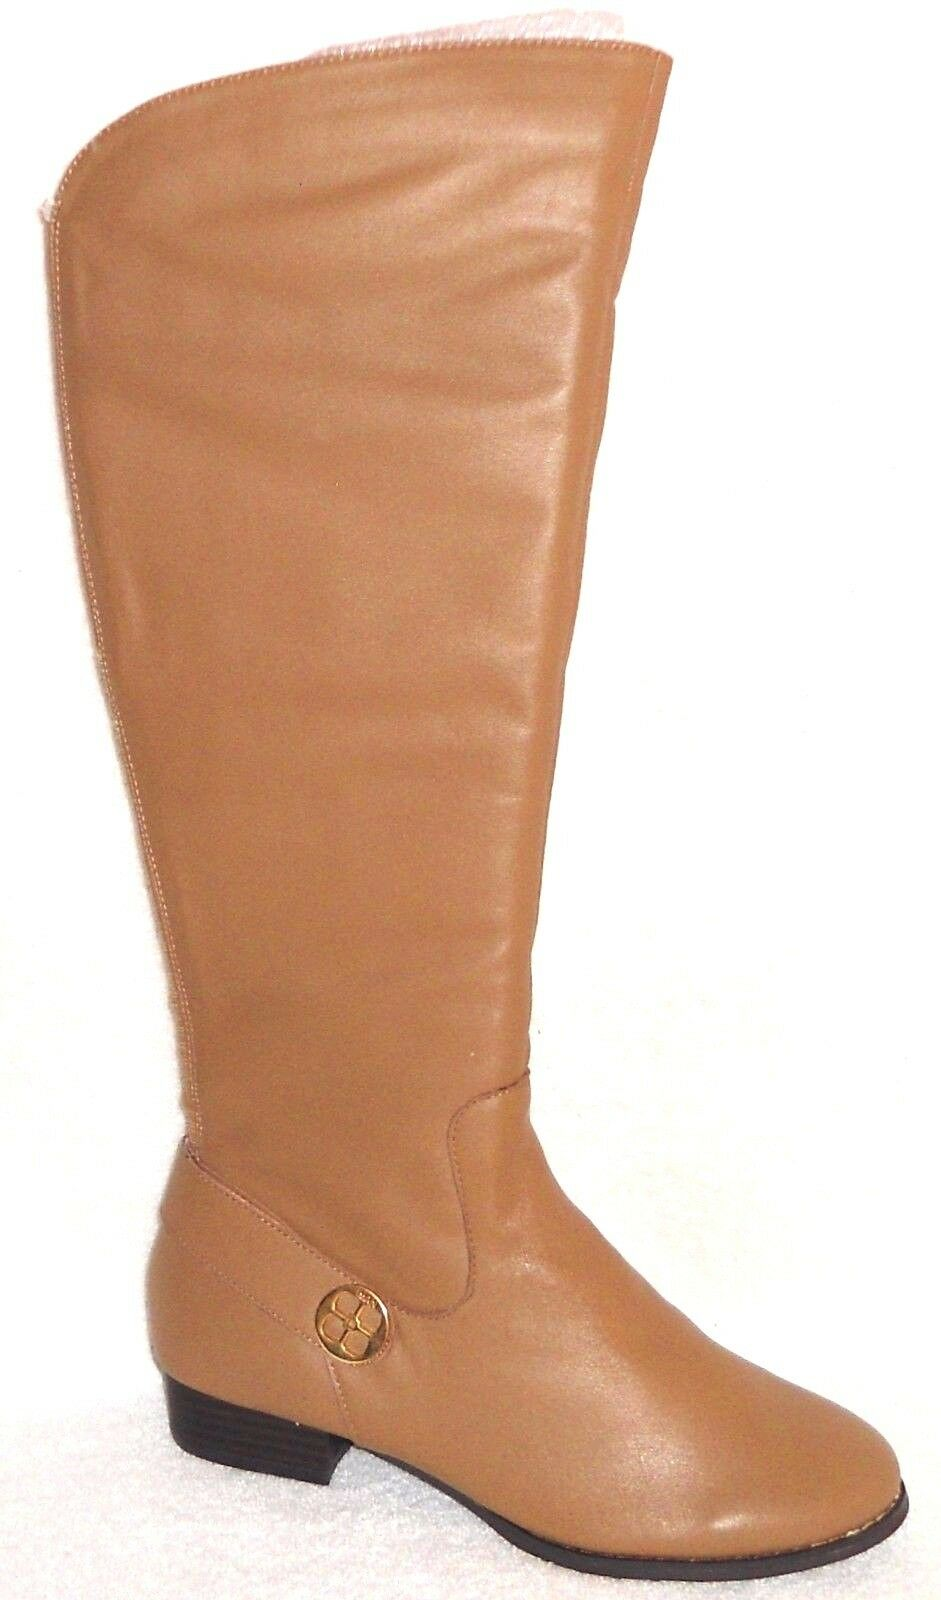 New IMAN PLATINUM RICH CAMEL LEATHER RIDING BOOTS 8 W